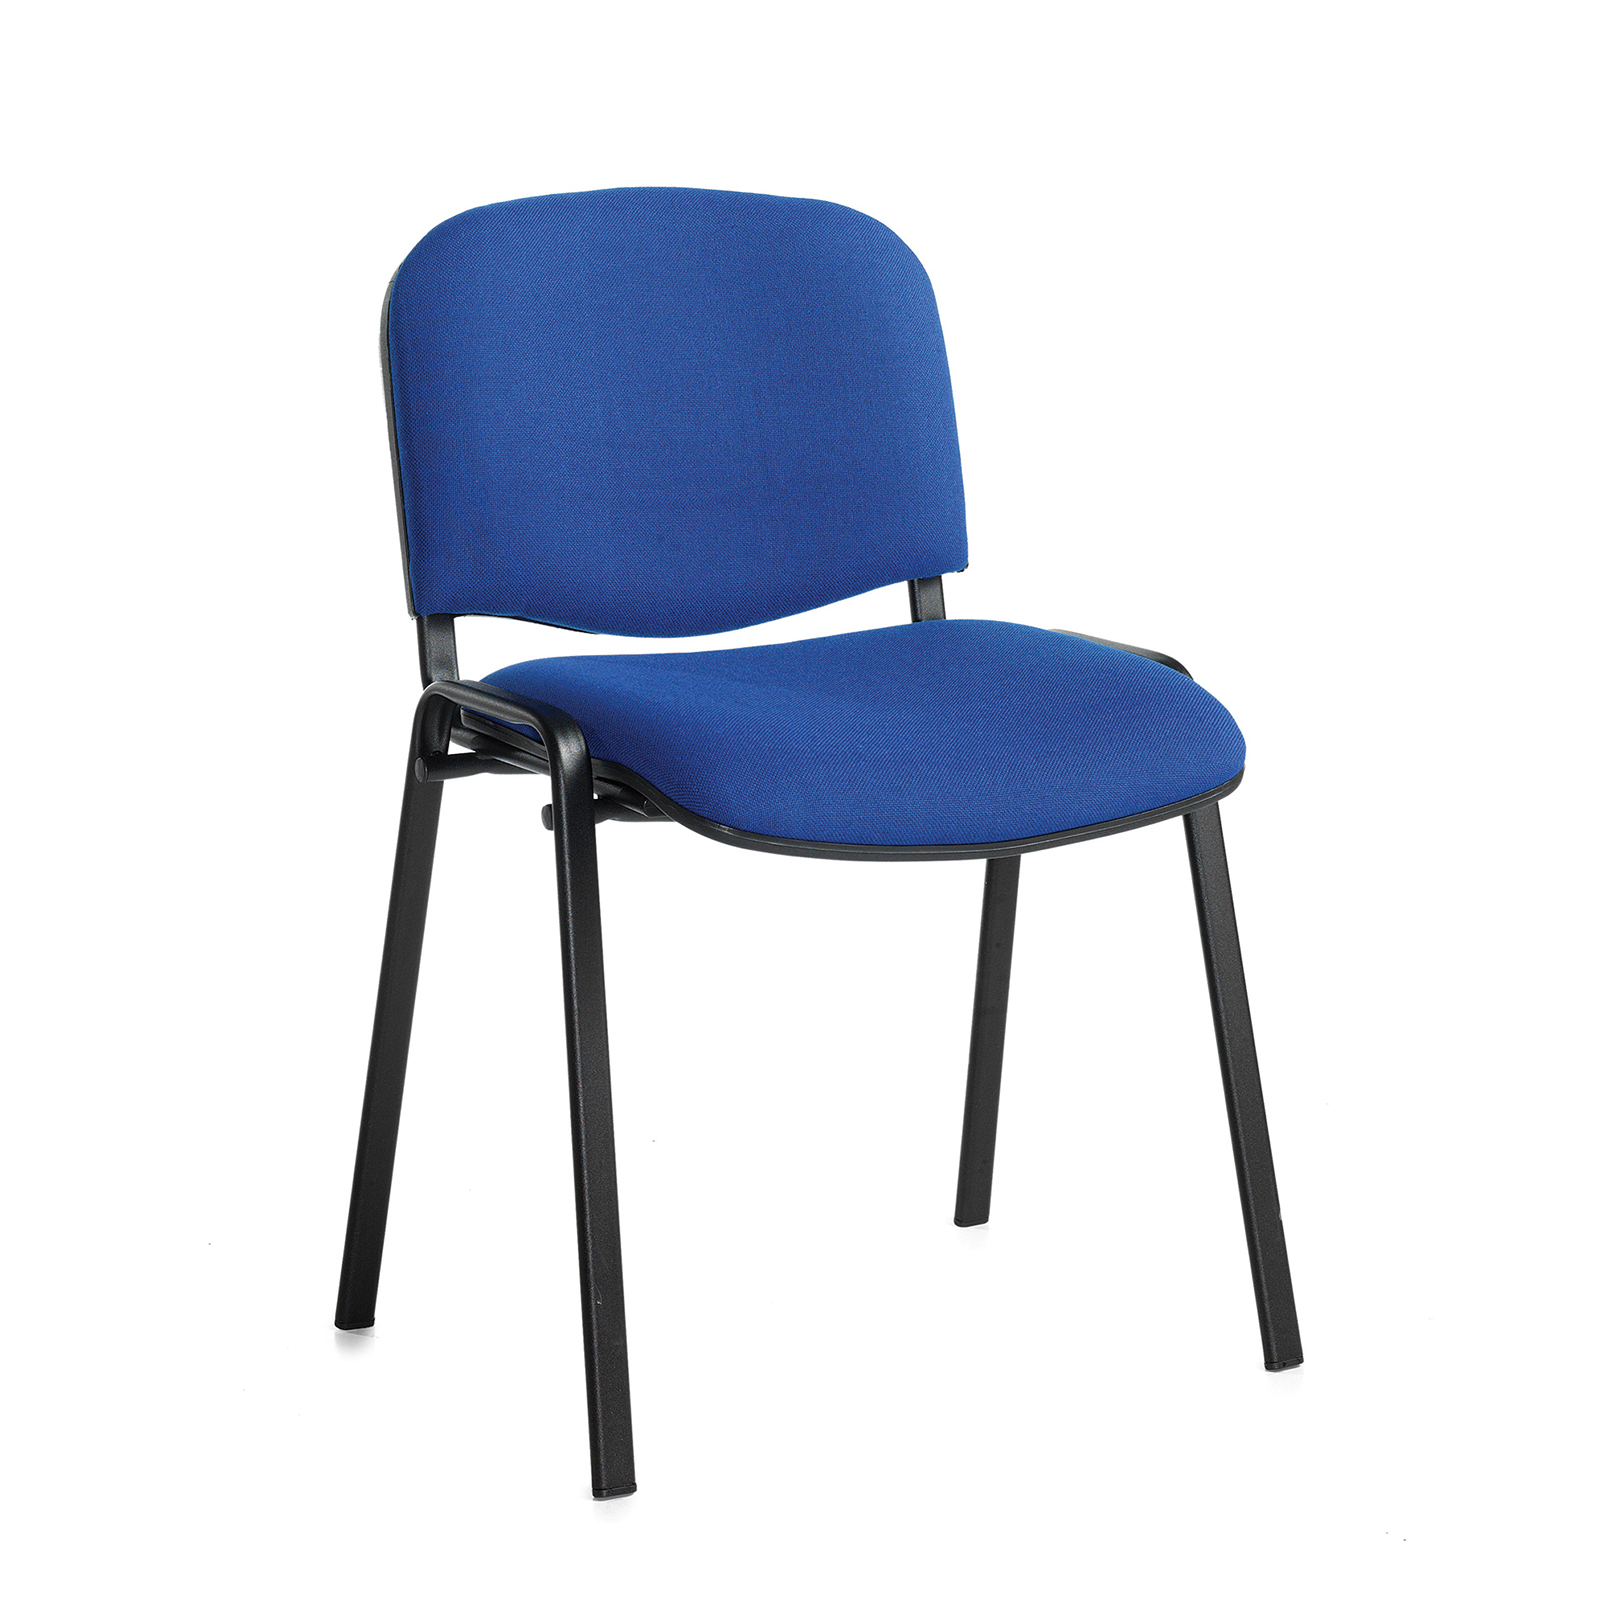 Boardroom / Meeting Taurus meeting room stackable chair with black frame and no arms - blue